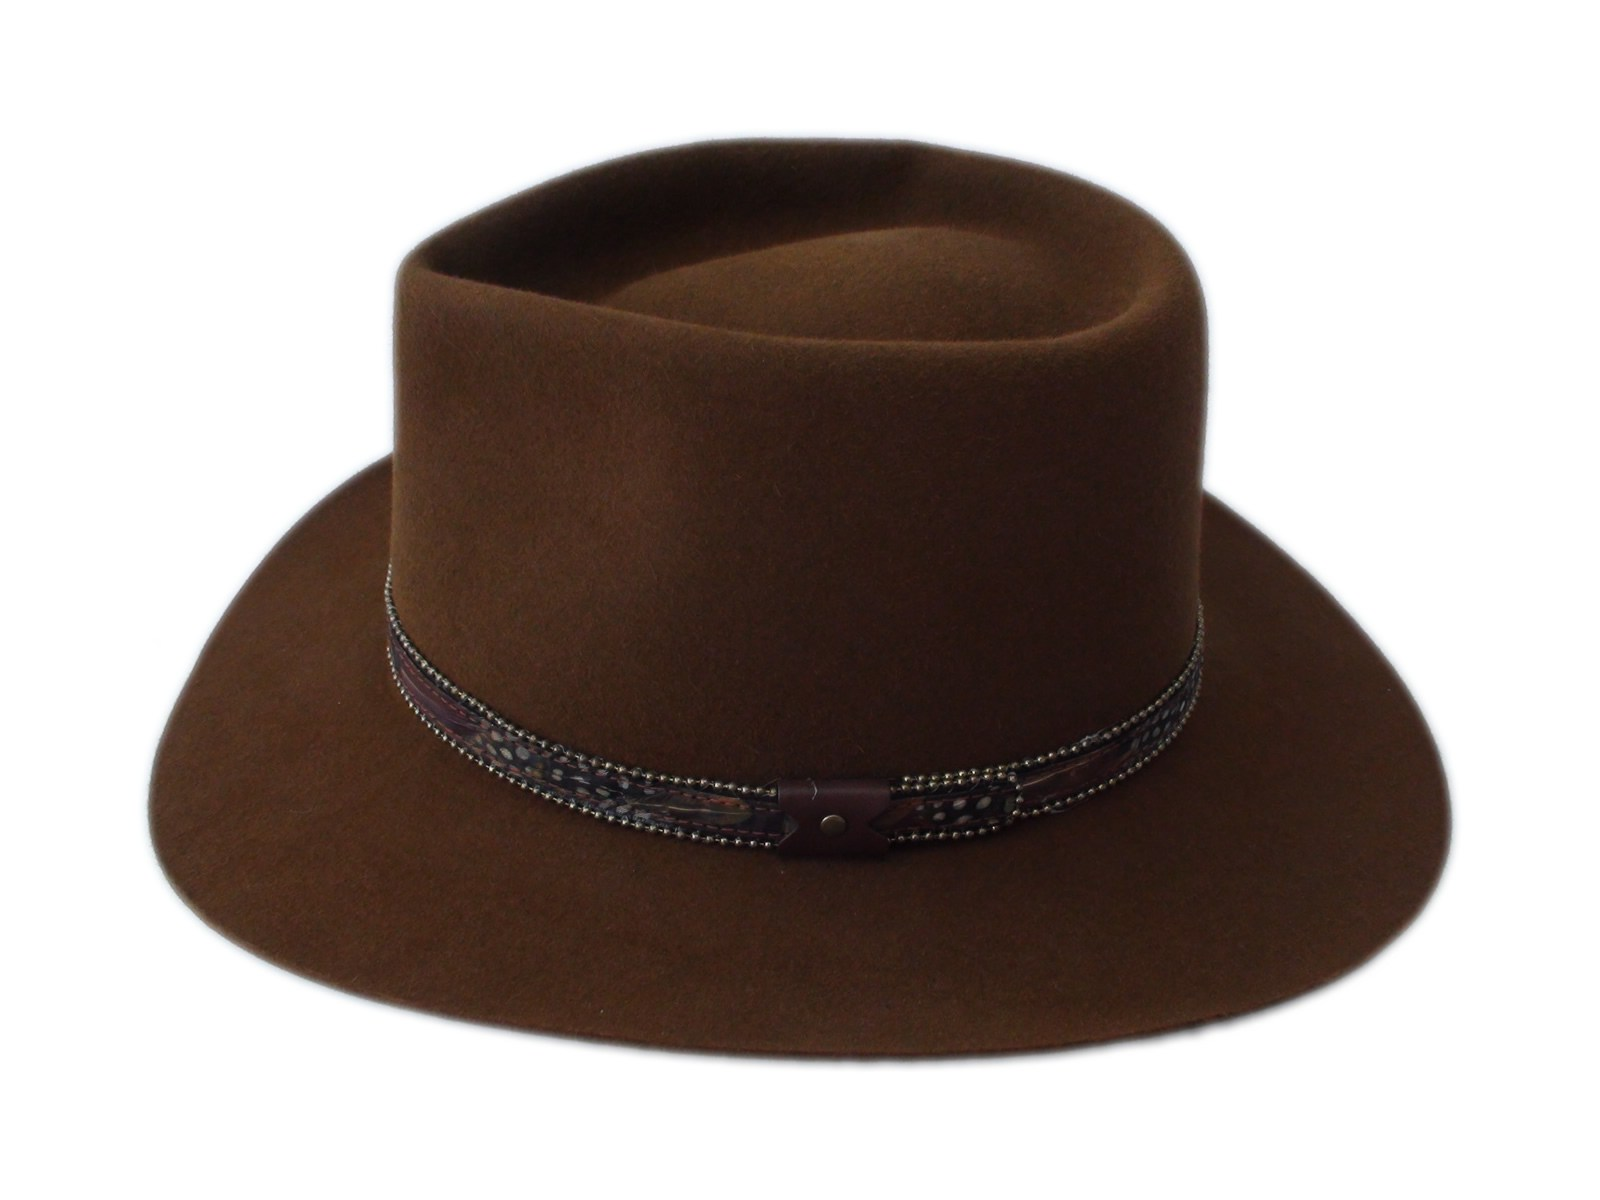 1600x1200 Smithbilt Hats Brown Fur Felt Western Cowboy Hat